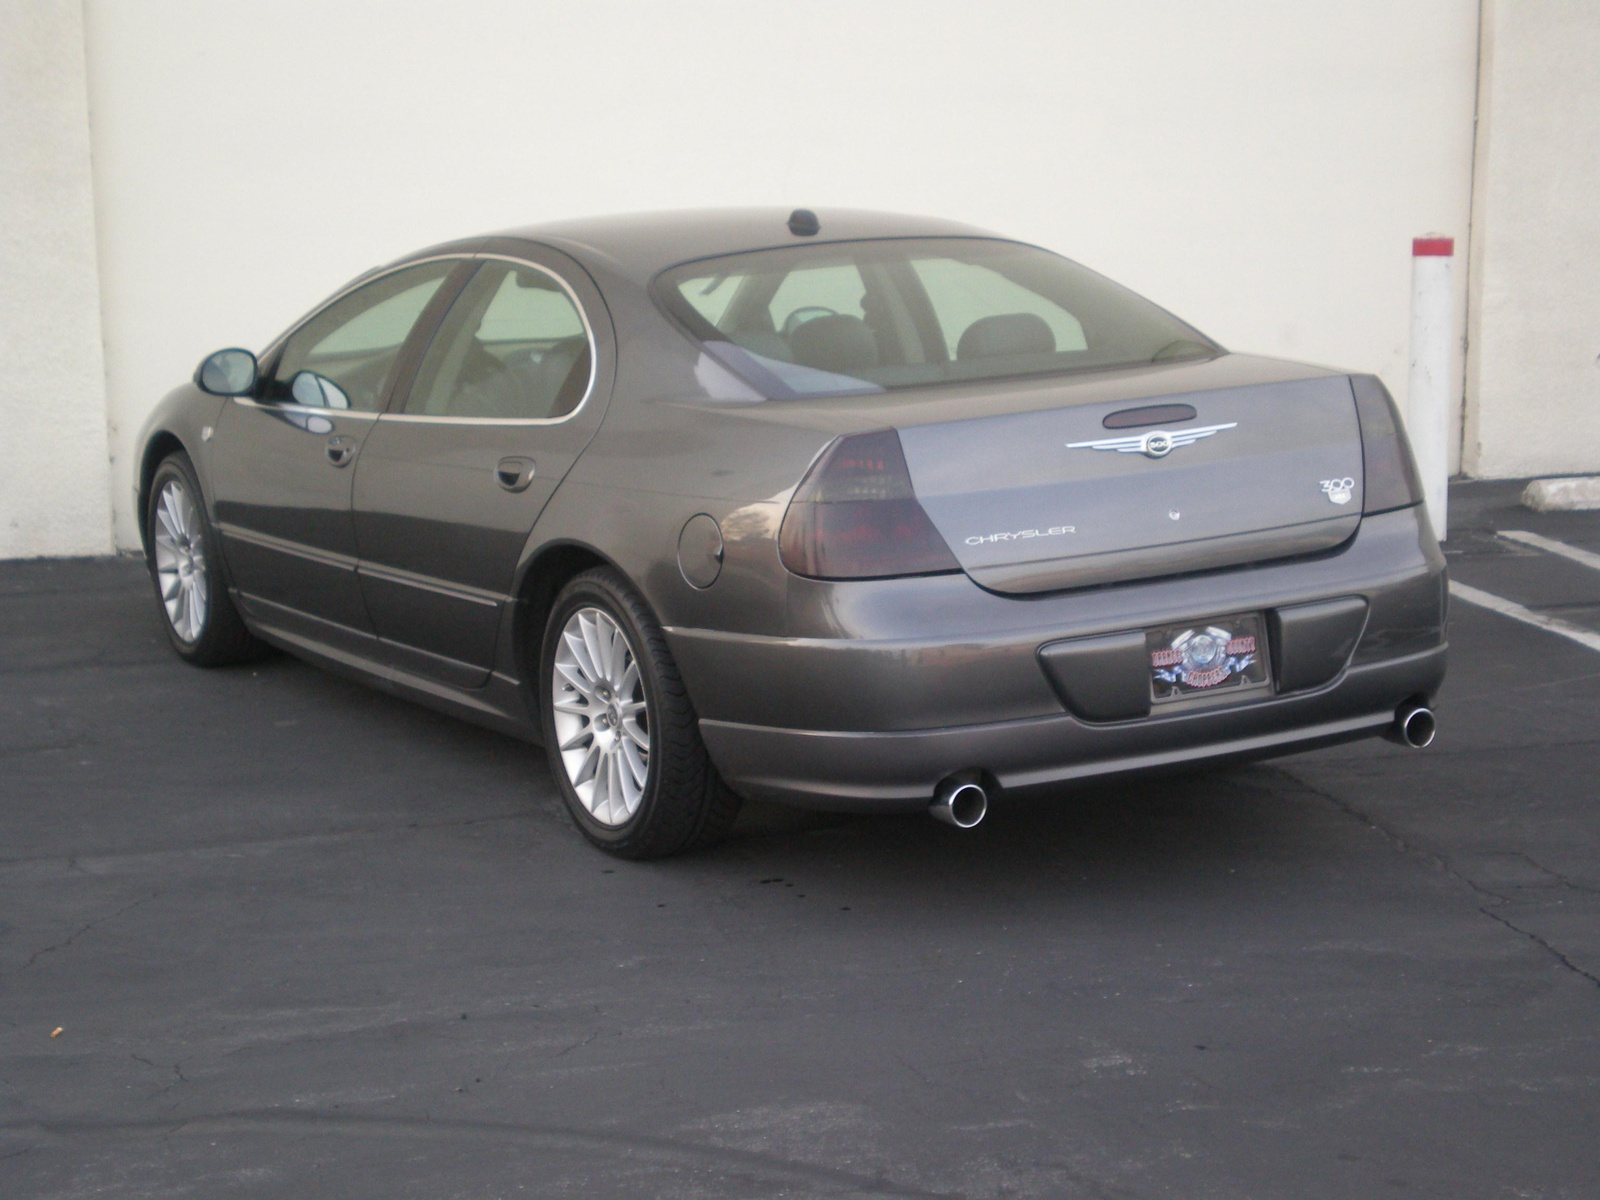 2000 Chrysler 300 Chrysler 300 2004 Review Amazing Pictures And Images Look At